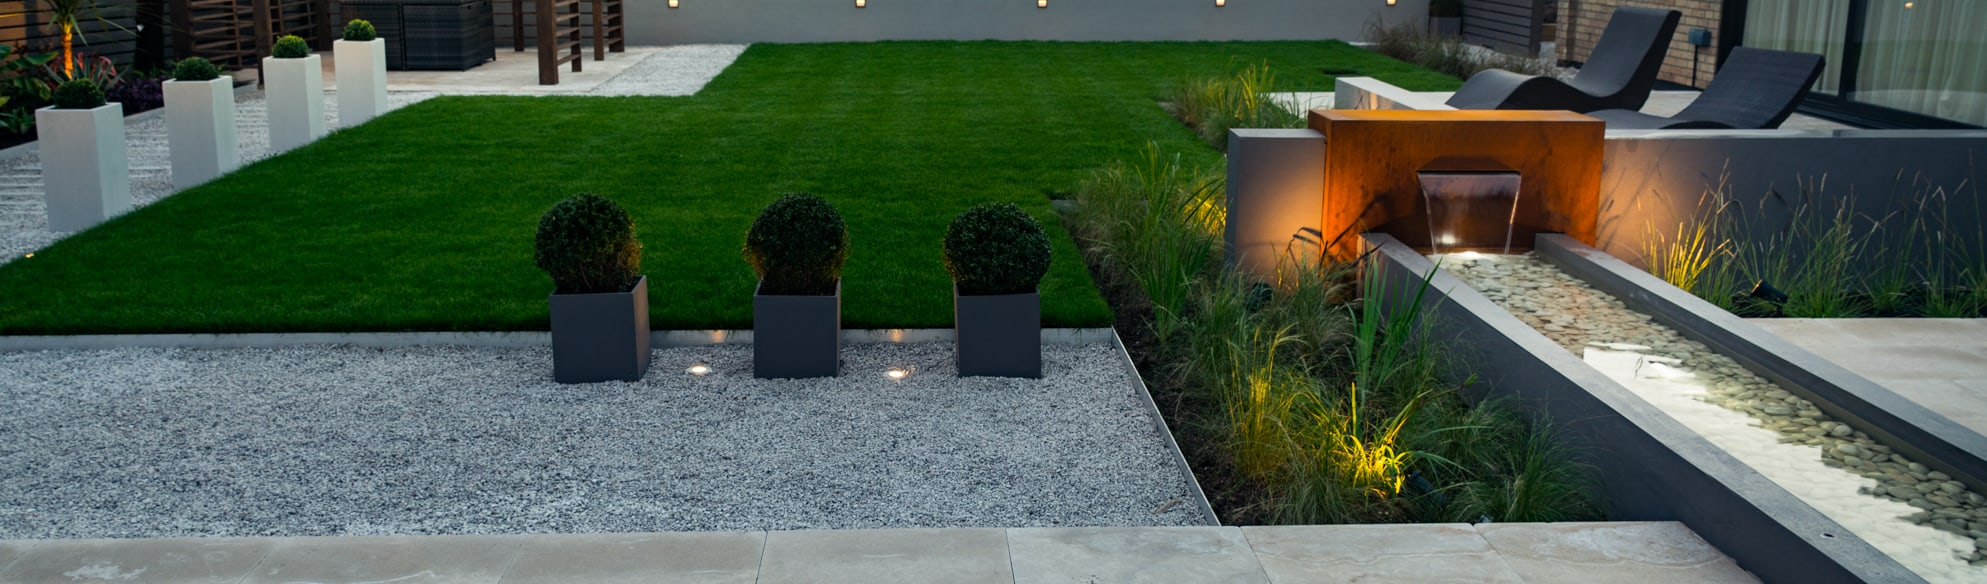 Robert Hughes Garden Design Landscape Architects in knutsford